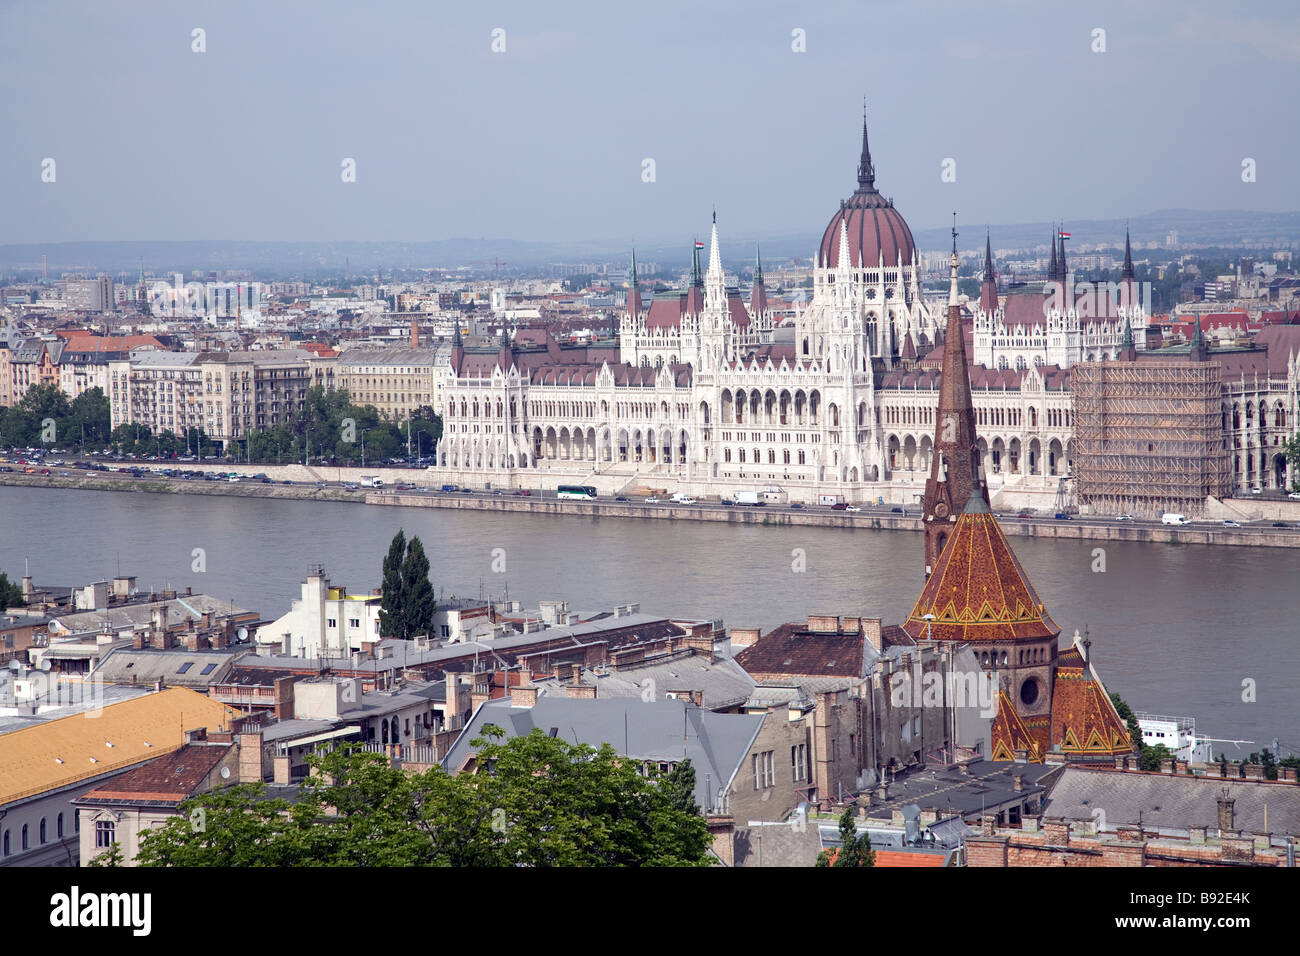 Hungarian Parliament on the banks of the Danube in Budapest as seen from Castle Hill - Stock Image